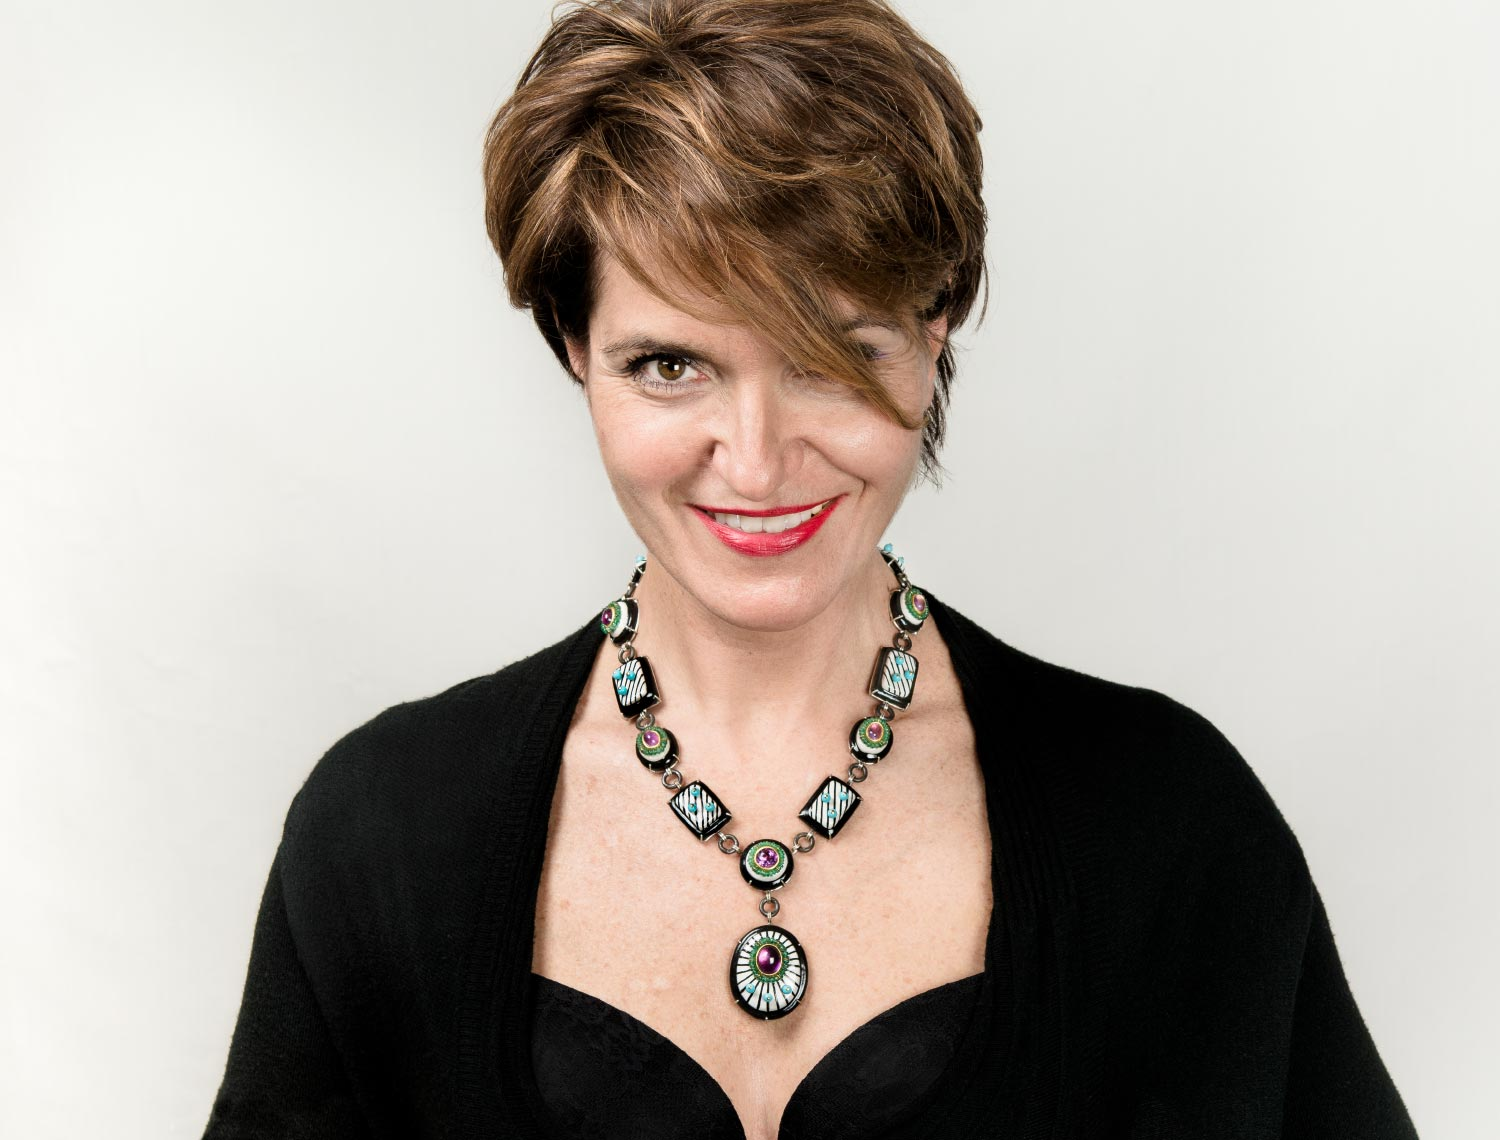 Contemporary necklace Zenit, 2020 from Italy. Material: papier-mâché, silver, iron, emeralds, amethysts, turquoise paste and gold leaf 22kt. Model Ester Cacciani, Bolzano.